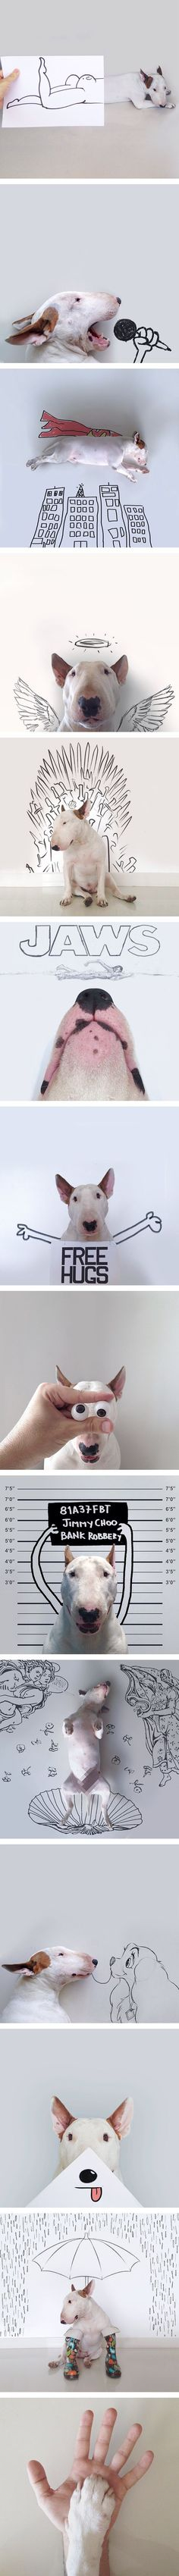 Such fun, creative, clever illustrations with Bull Terrier. And they are awesome.